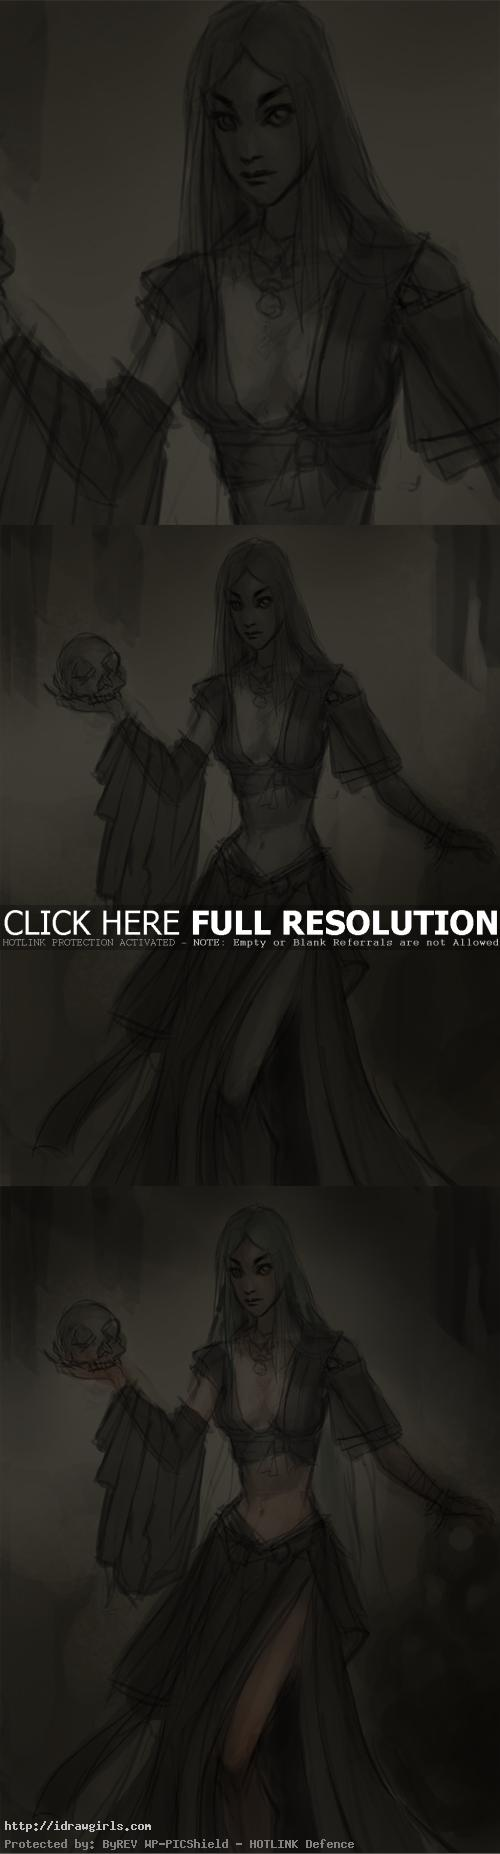 drawing tutorial warlock woman How to draw female warlock